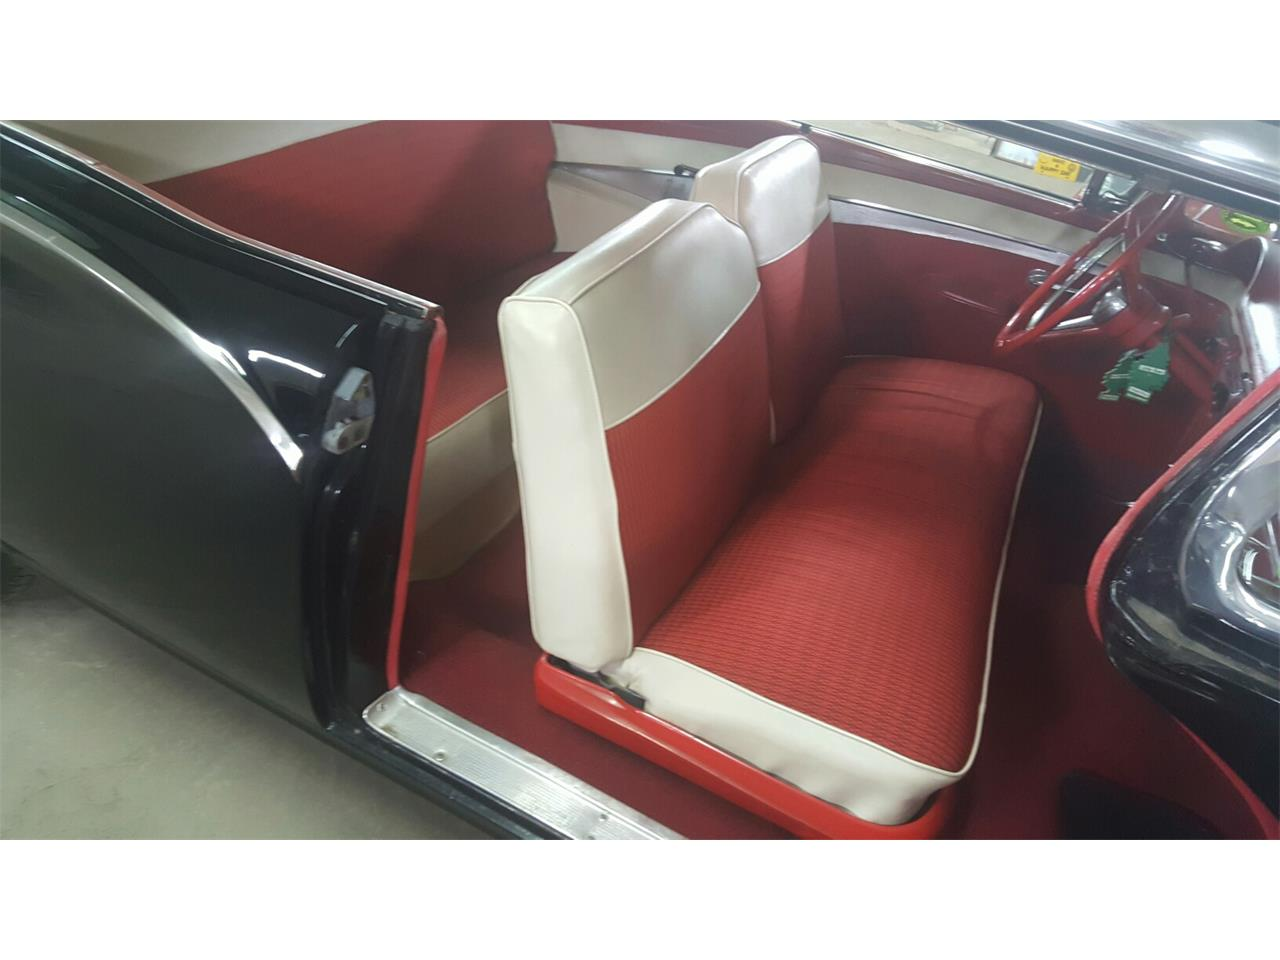 1957 Ford Fairlane 500 for sale in North Woodstock, CT – photo 27